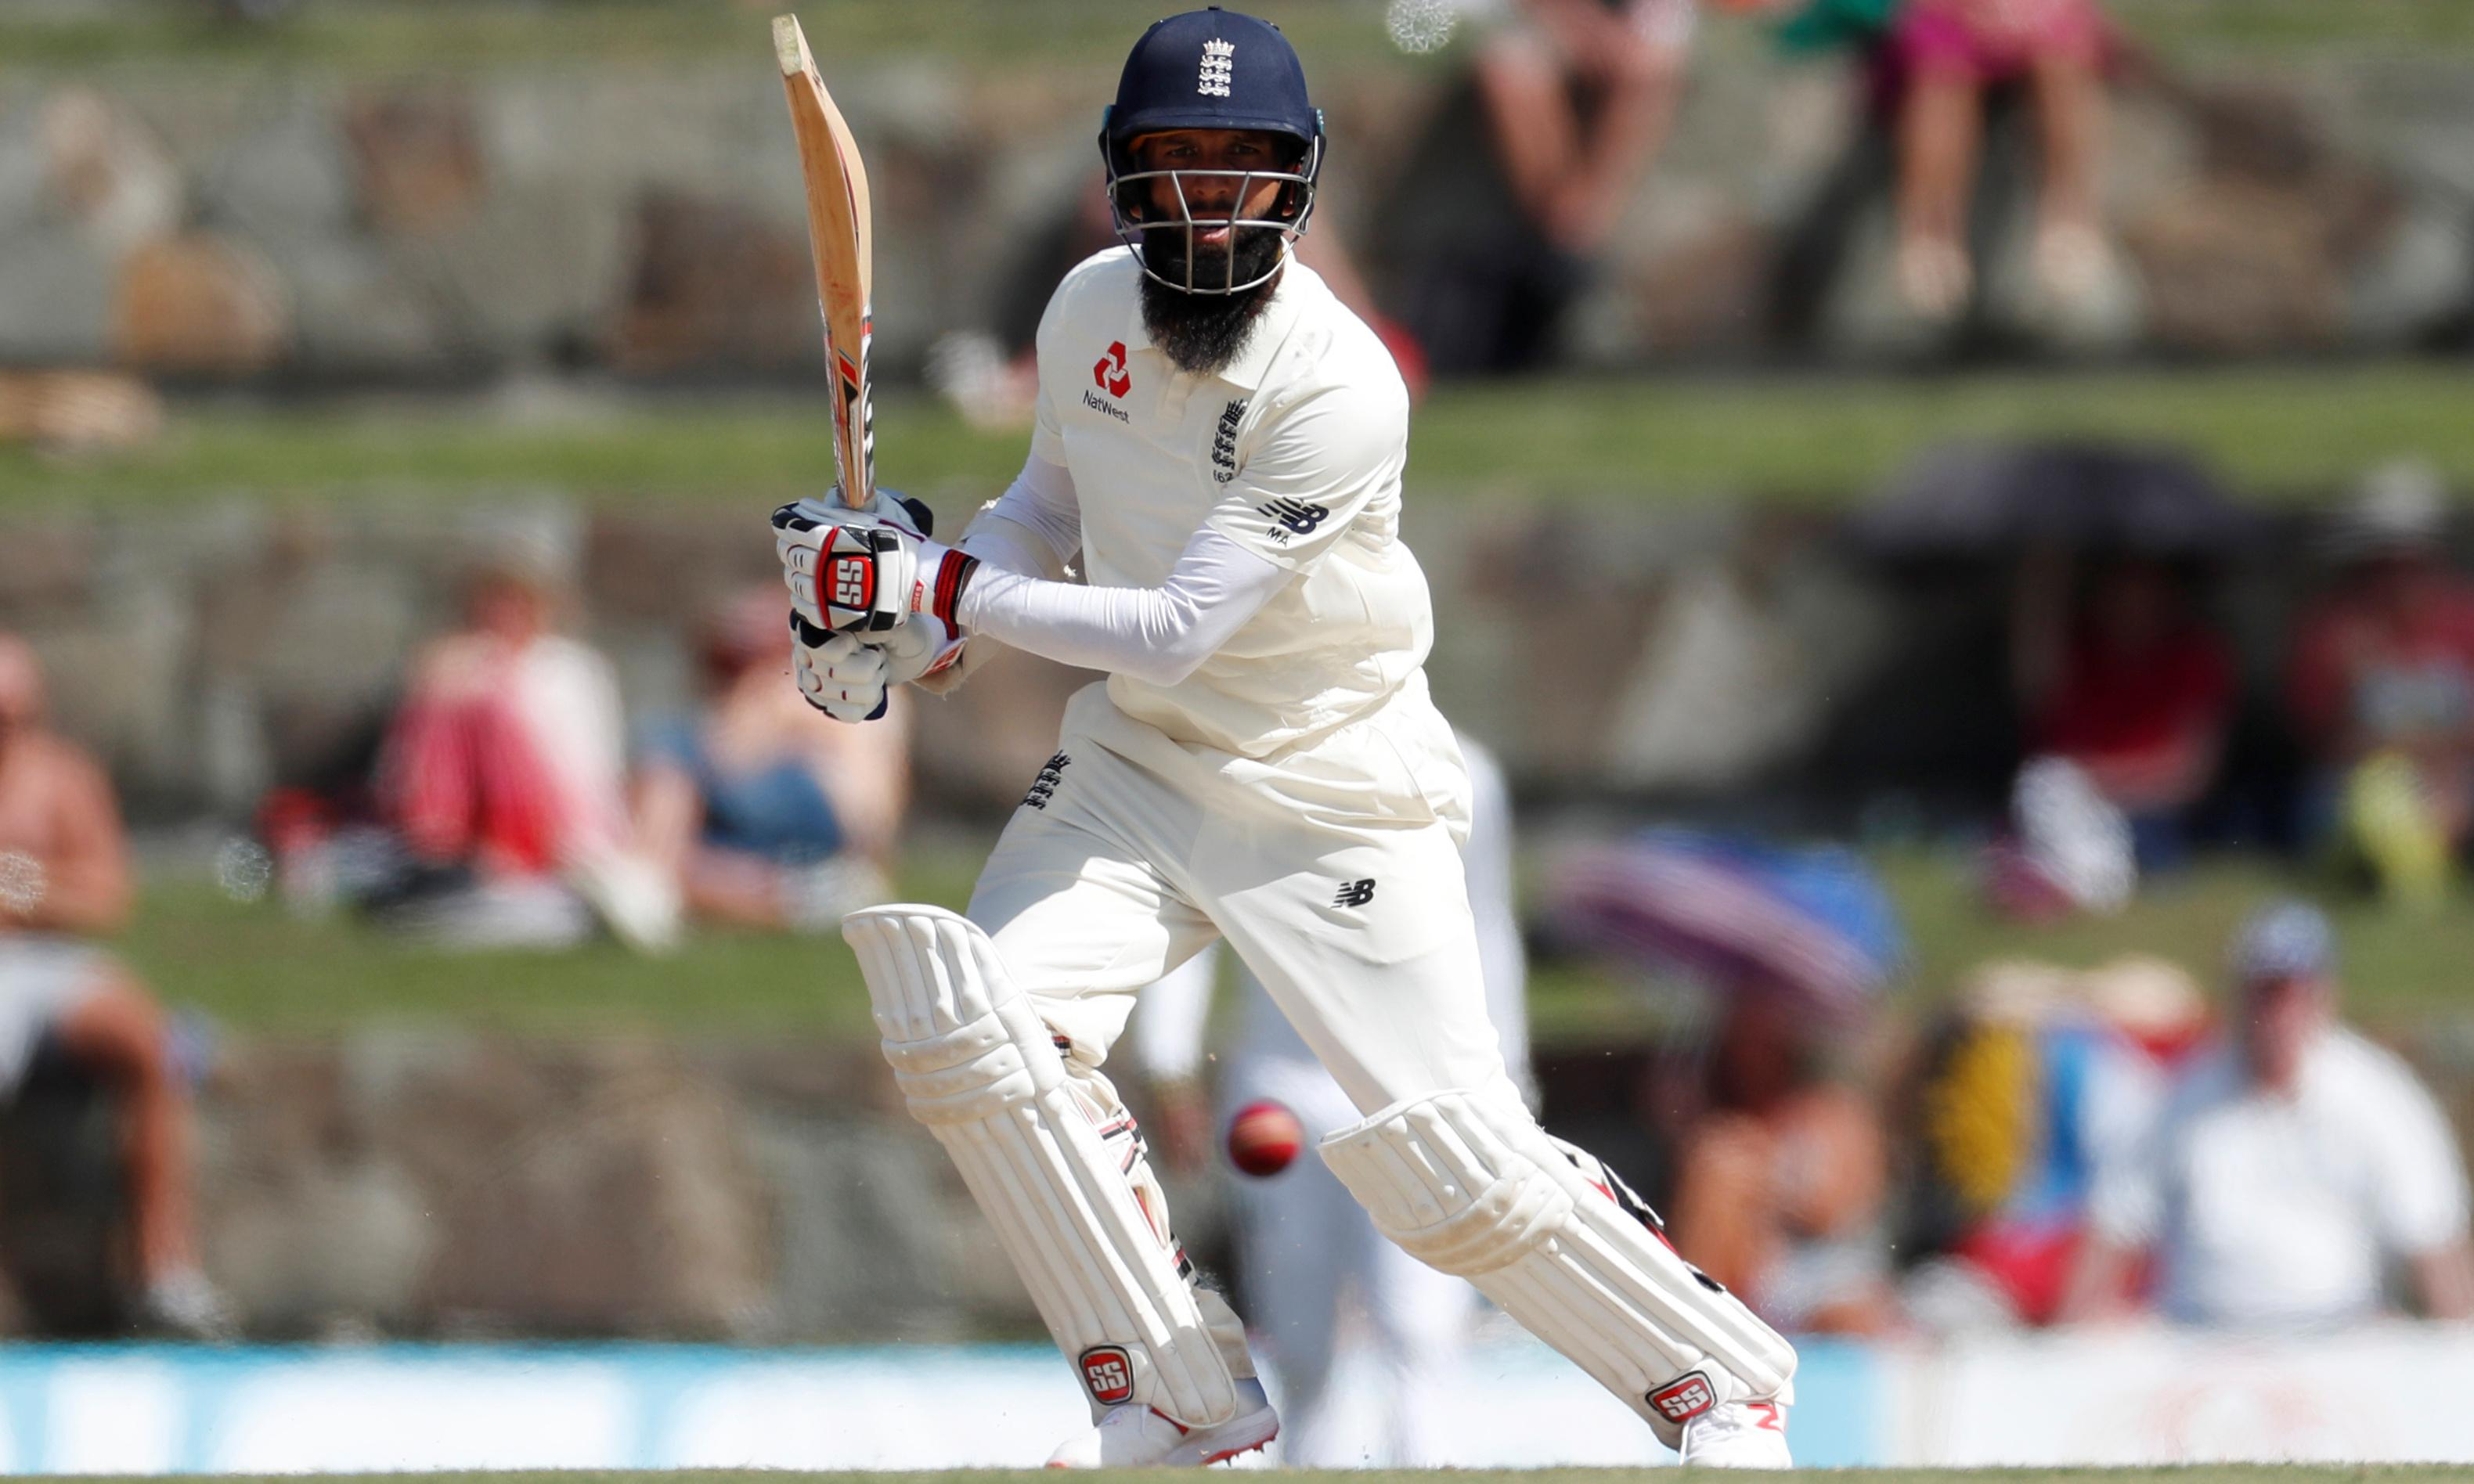 England's contract issue central to the international future for Moeen Ali